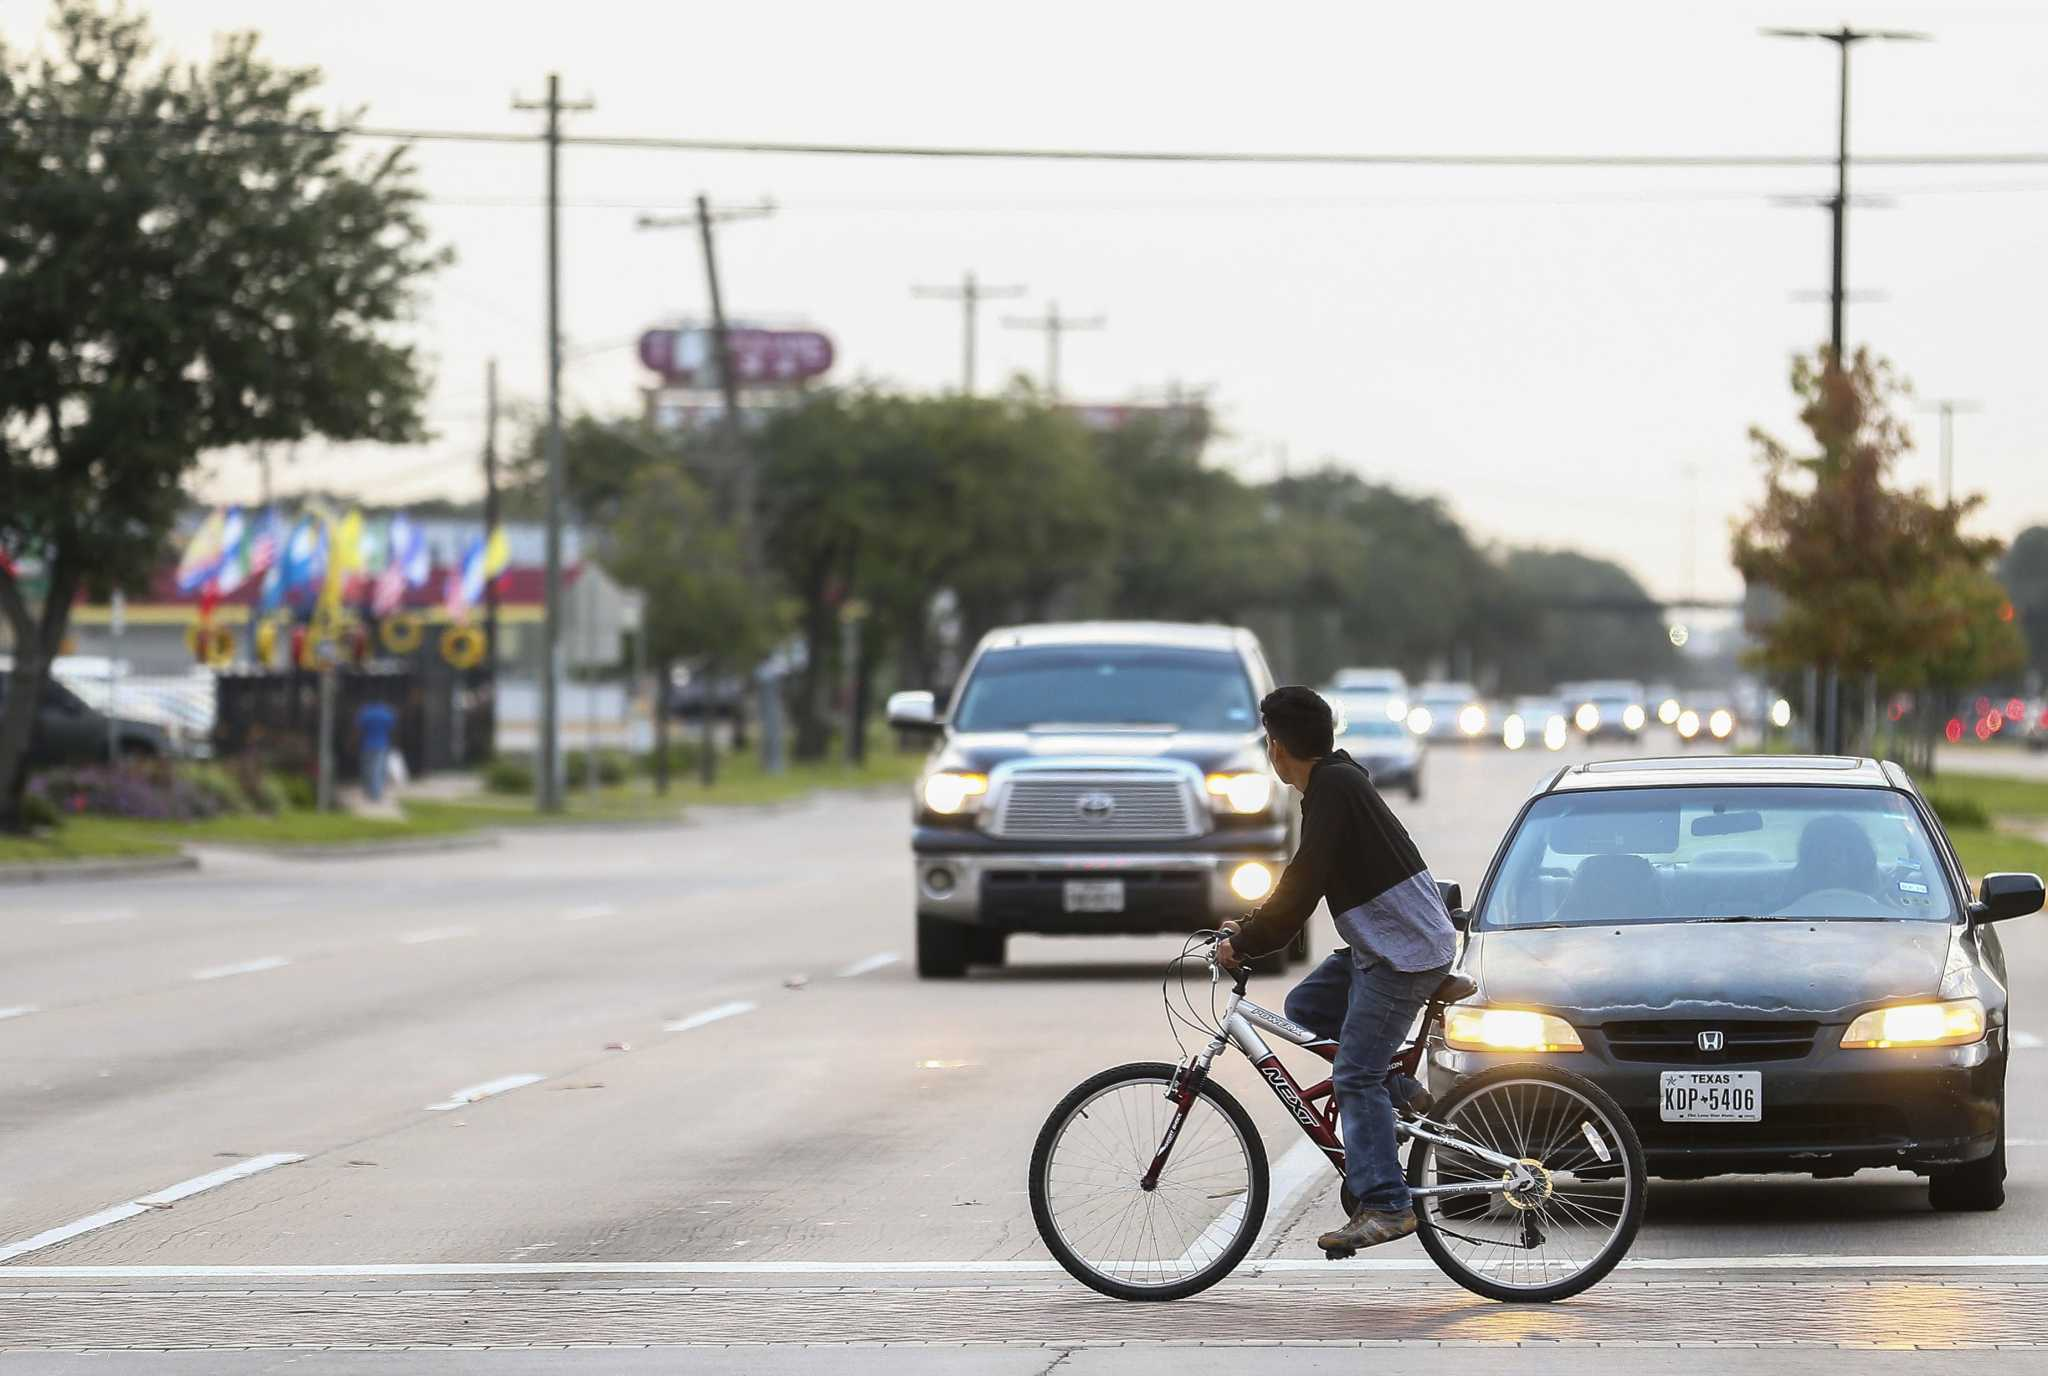 Quick fixes coming to some of Houston's key pedestrian intersections